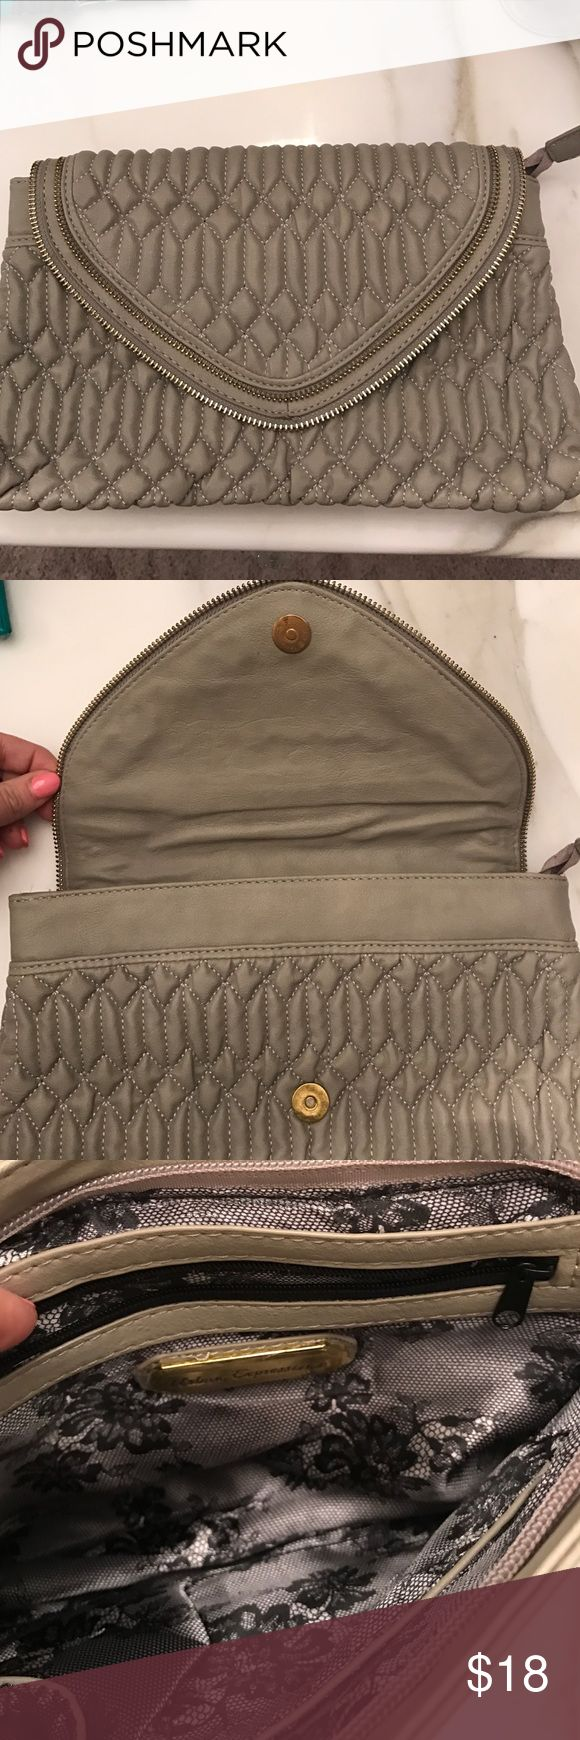 Grey clutch bag In excellent condition. No signs of wear. Used once. Matches any outfit. Gold zipper. Bags Clutches & Wristlets